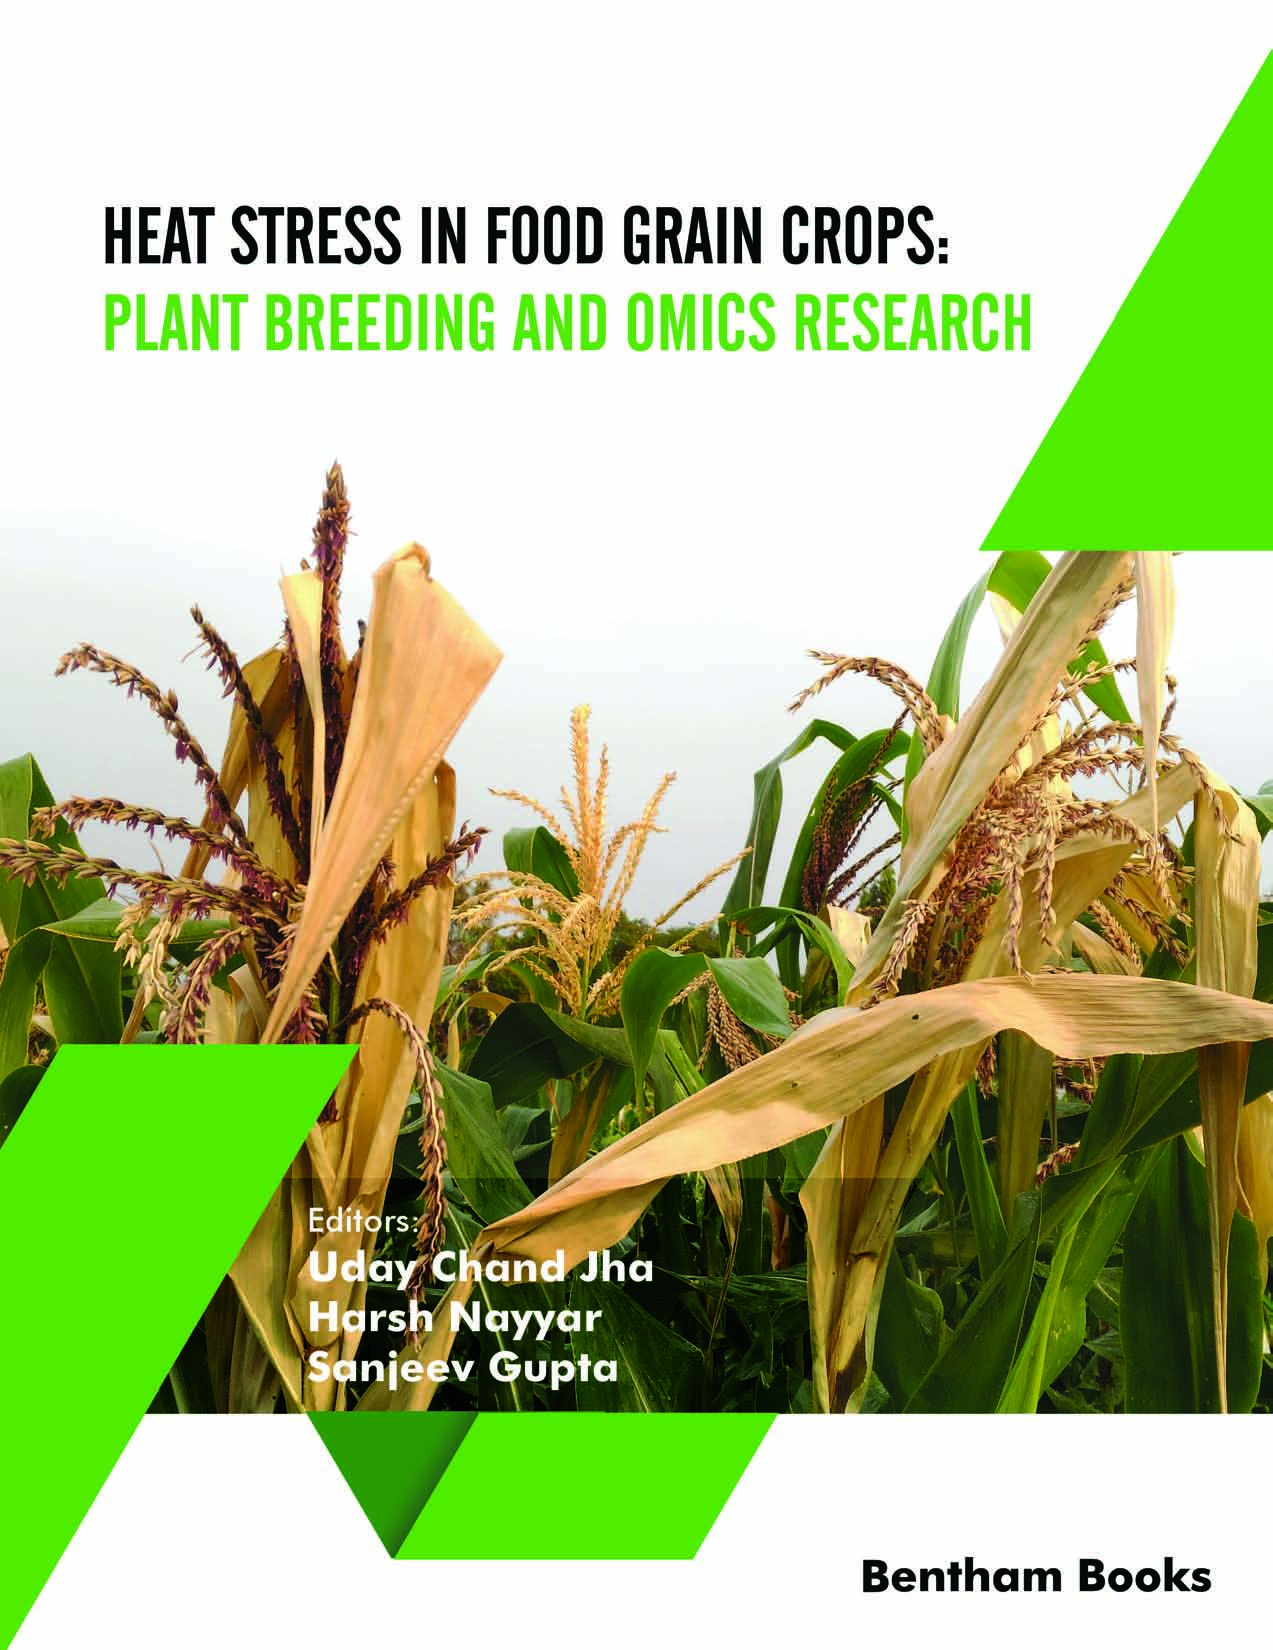 Heat Stress In Food Grain Crops: Plant Breeding and Omics Research